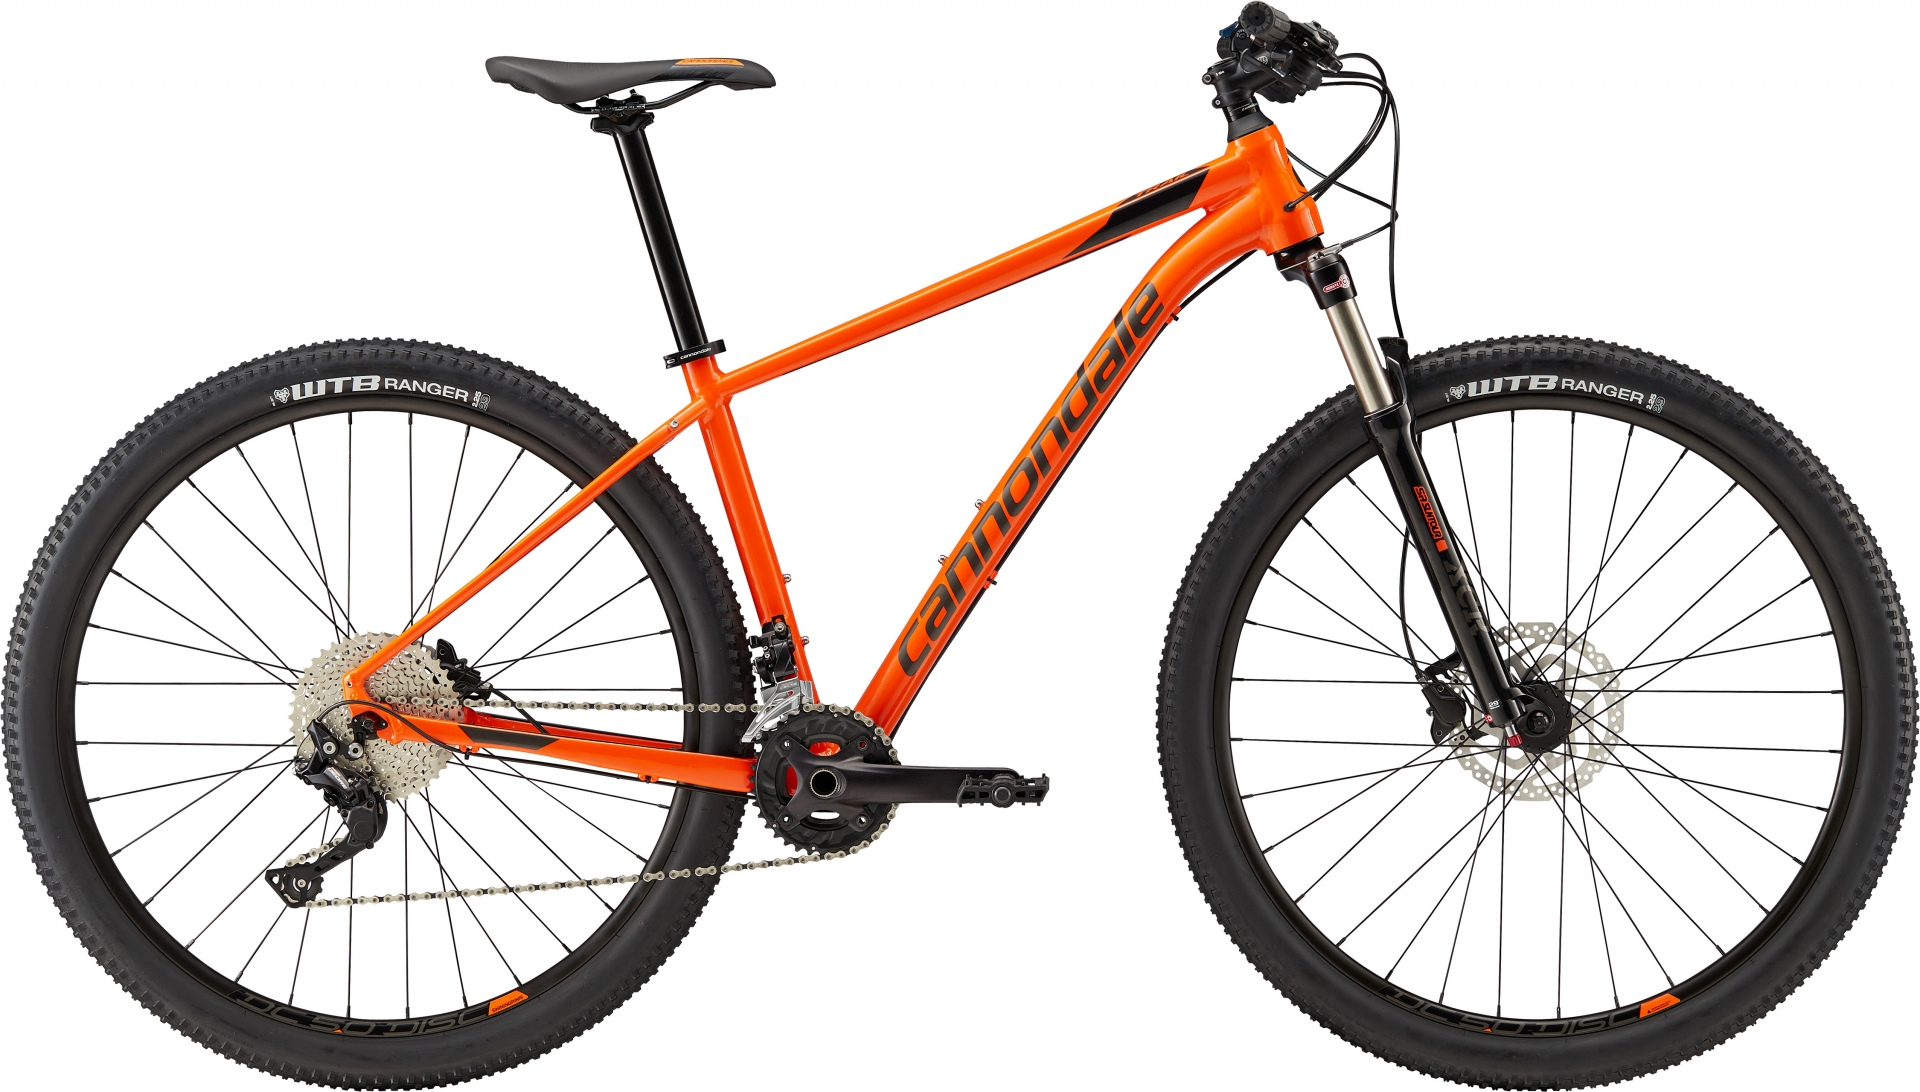 VTT Cannondale Trail 5 27.5/29 Orange - L / 29